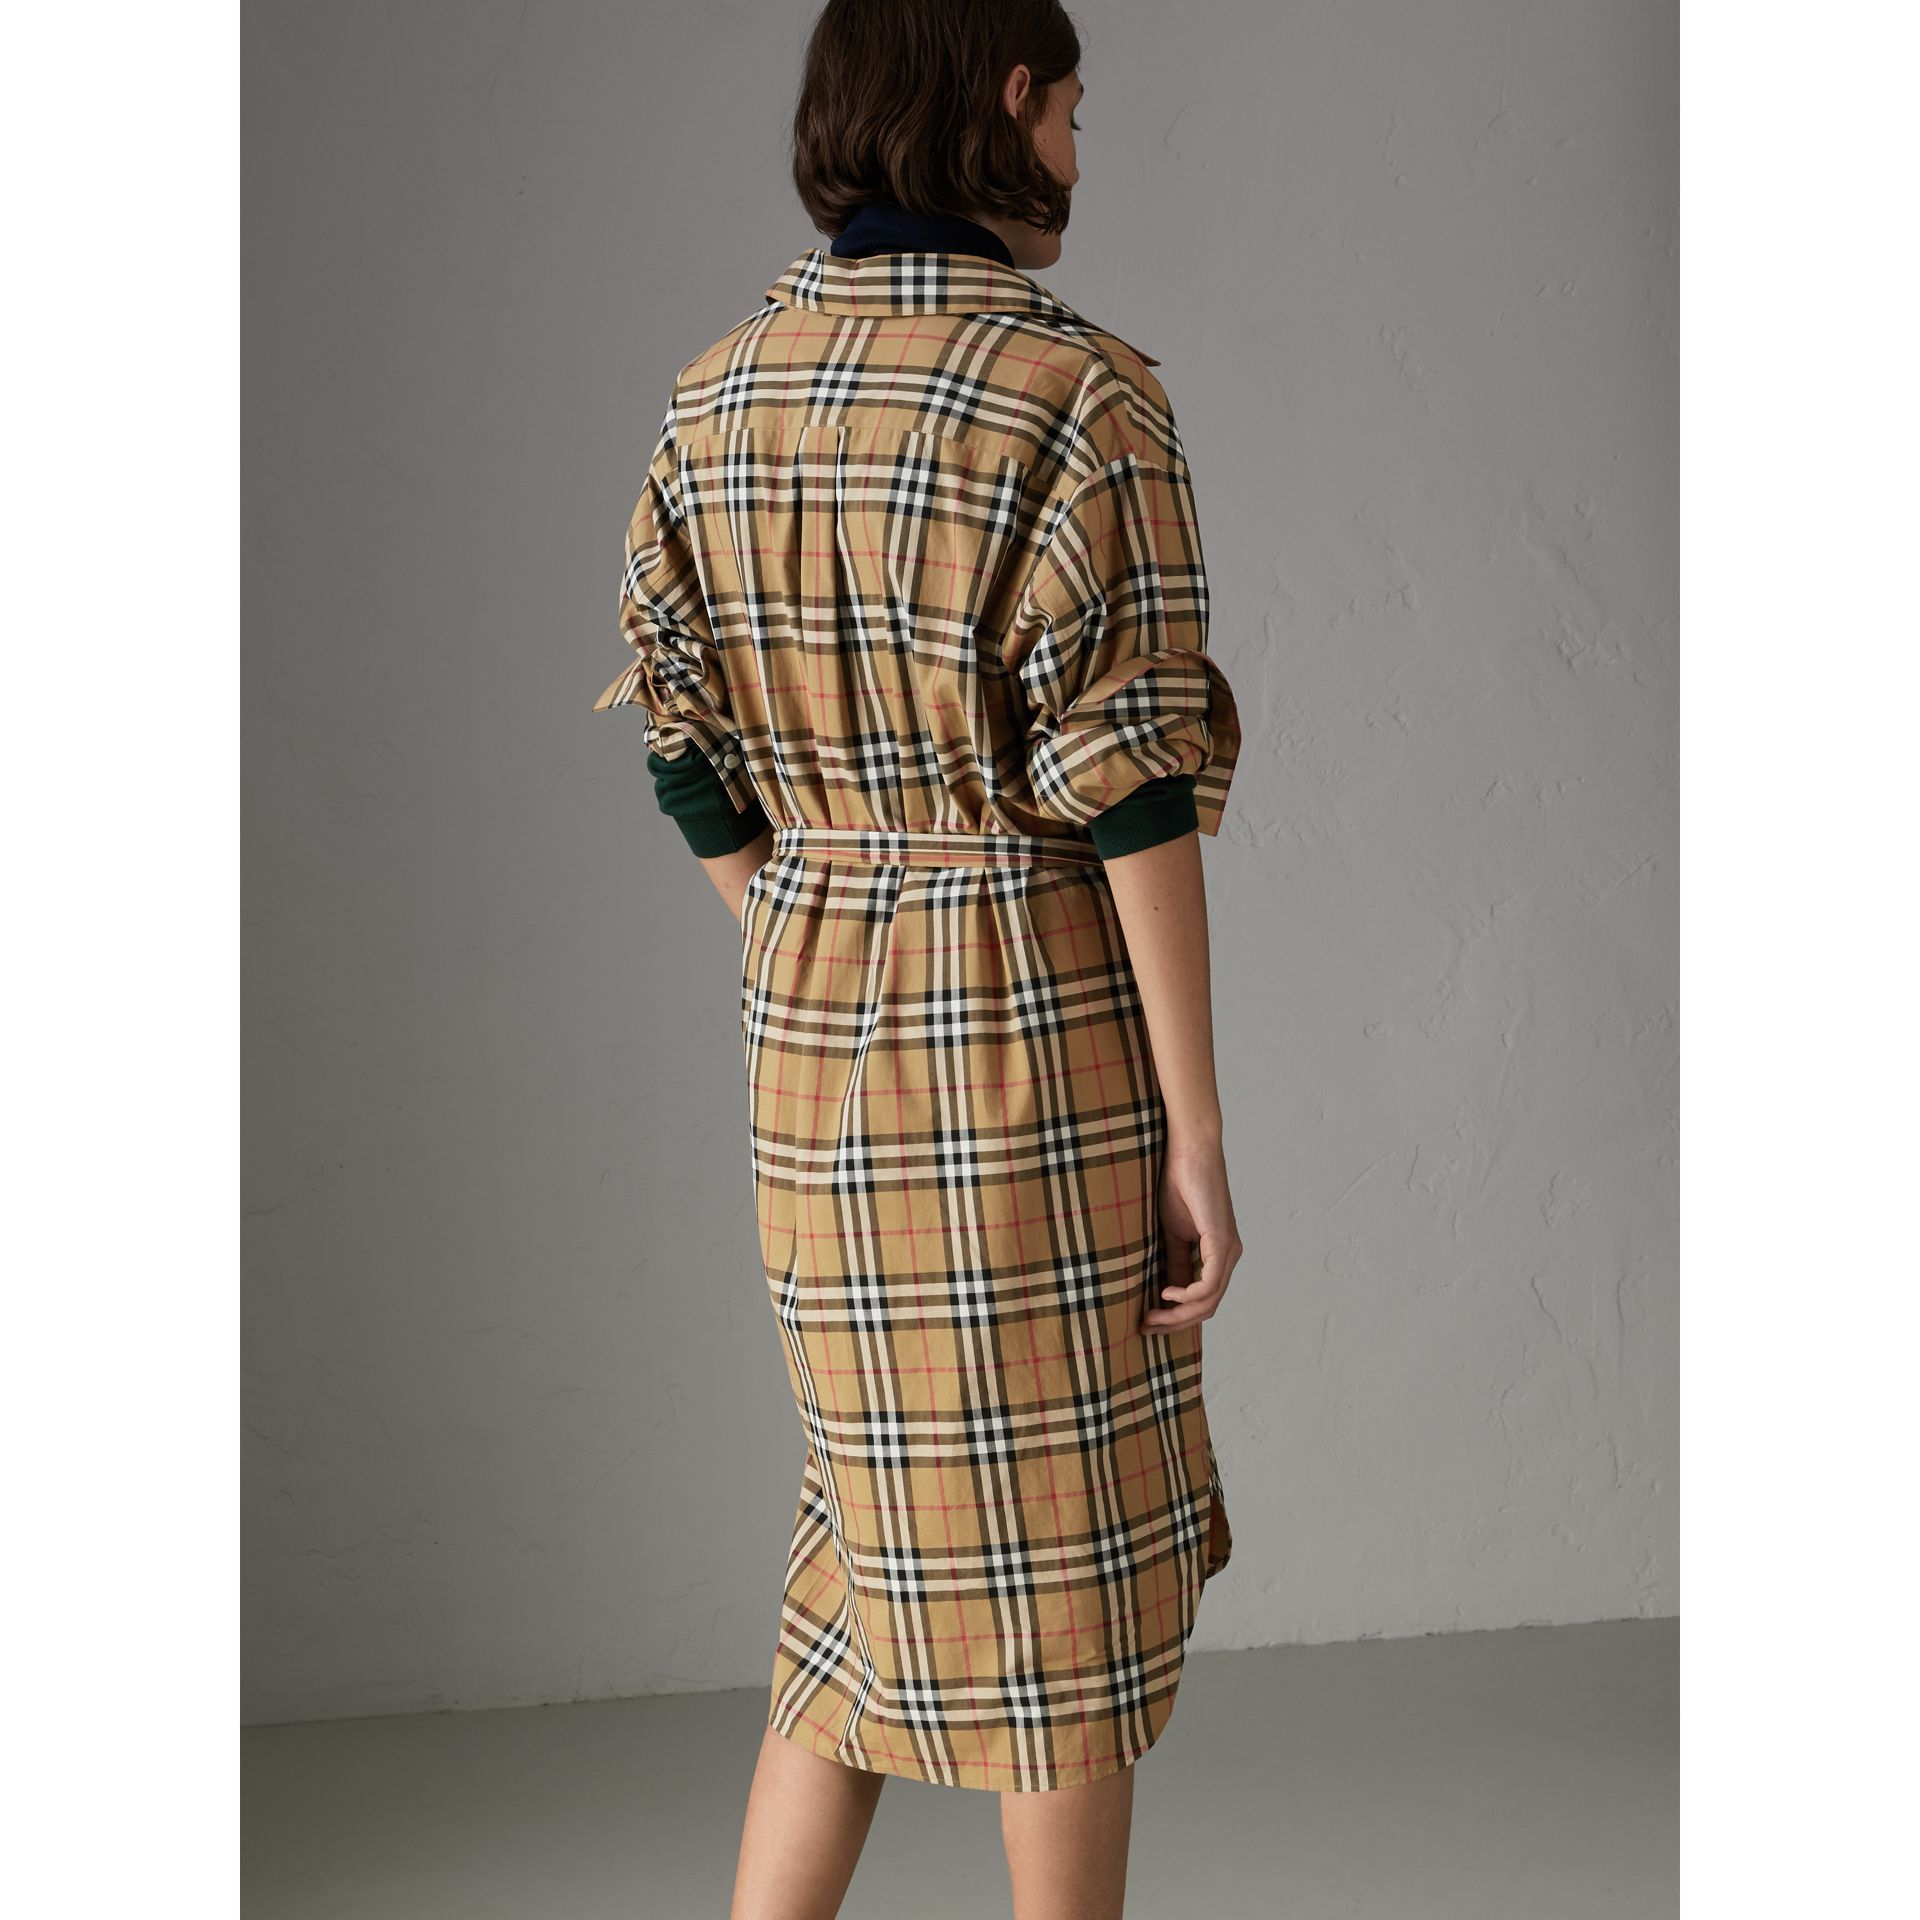 Tie-waist Vintage Check Cotton Shirt Dress in Antique Yellow - Women | Burberry Australia - gallery image 2